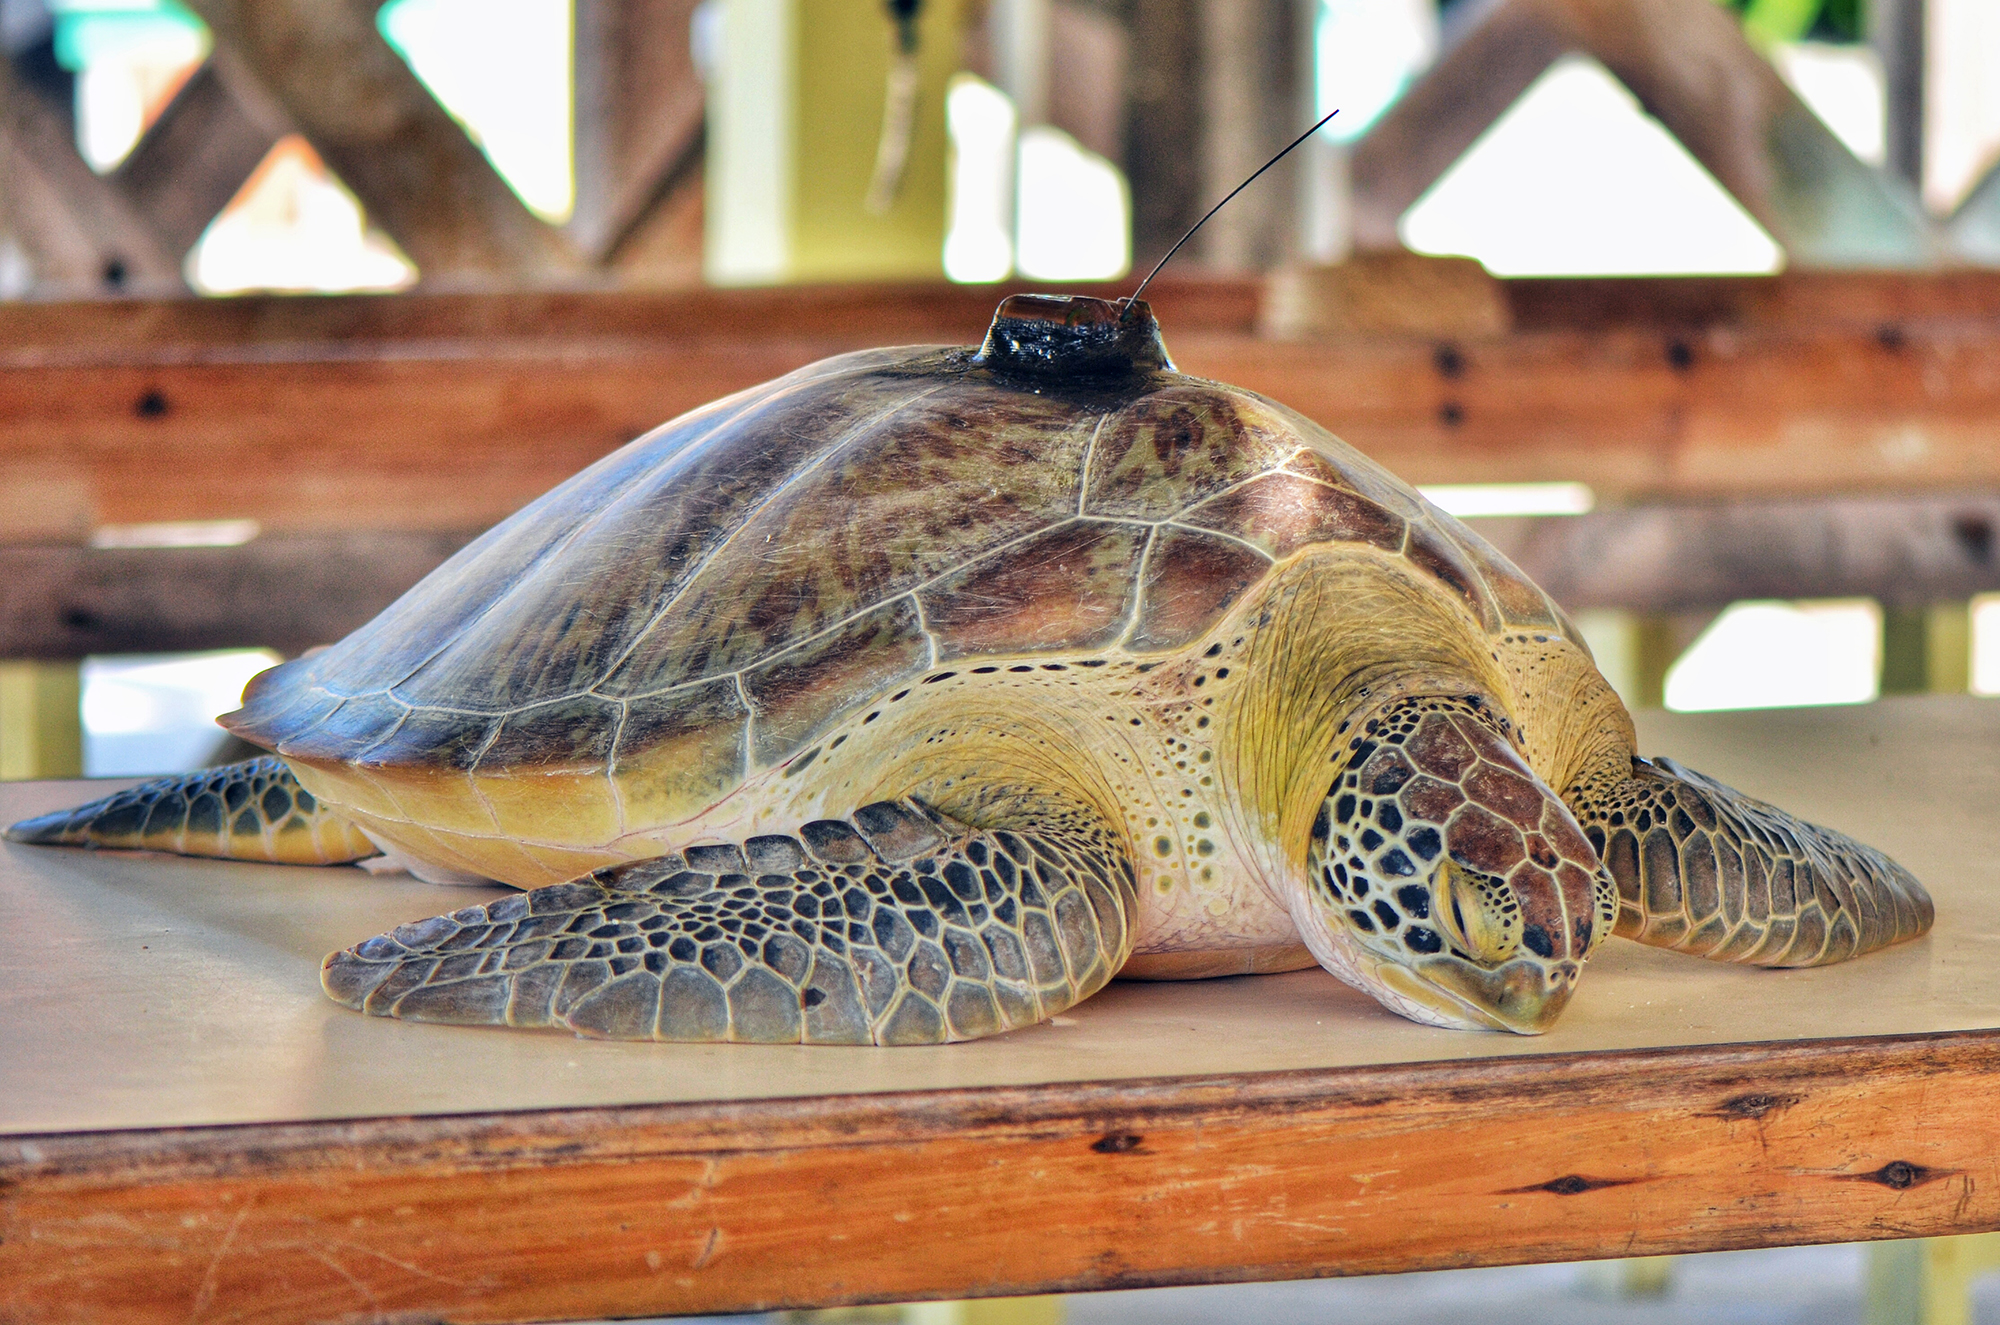 A Green Turtle that Knows How to Travel